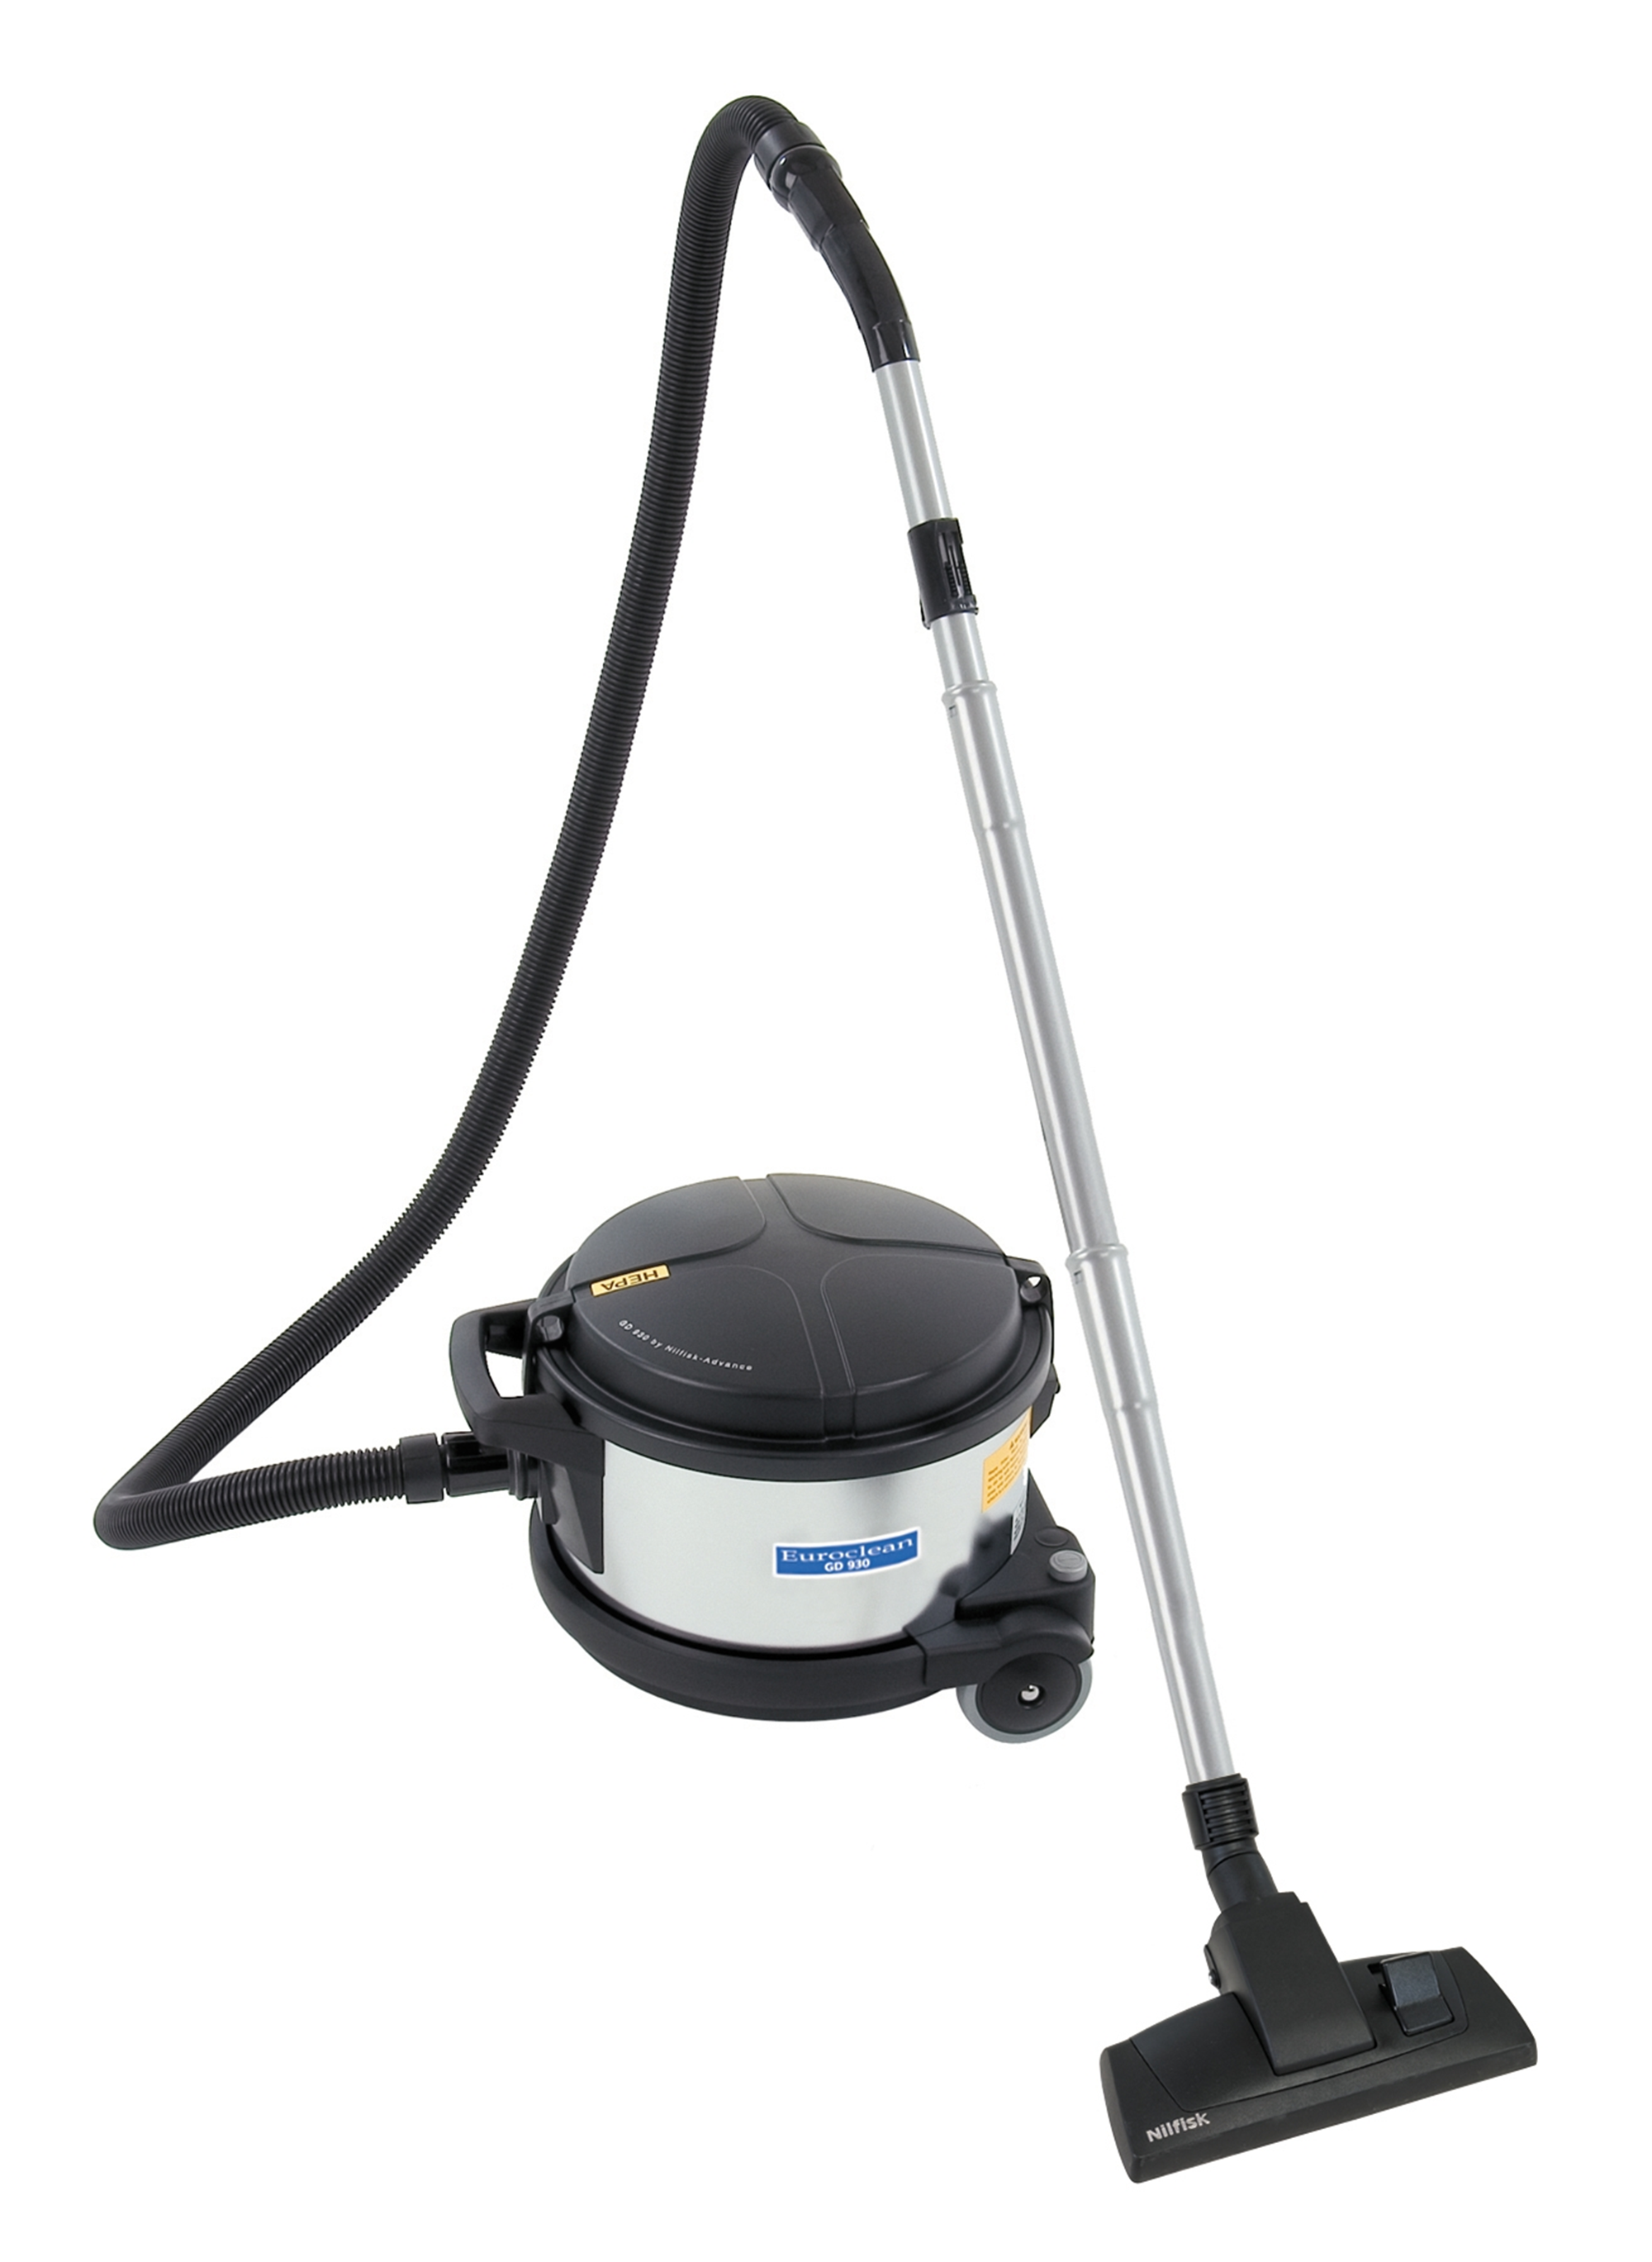 Product, Carpet Cleaning, Commercial Vacuum Cleaners, Canister Vacuum Cleaners, Nilfisk, GD930 HSP 120V 4 GAL HEPA VAC